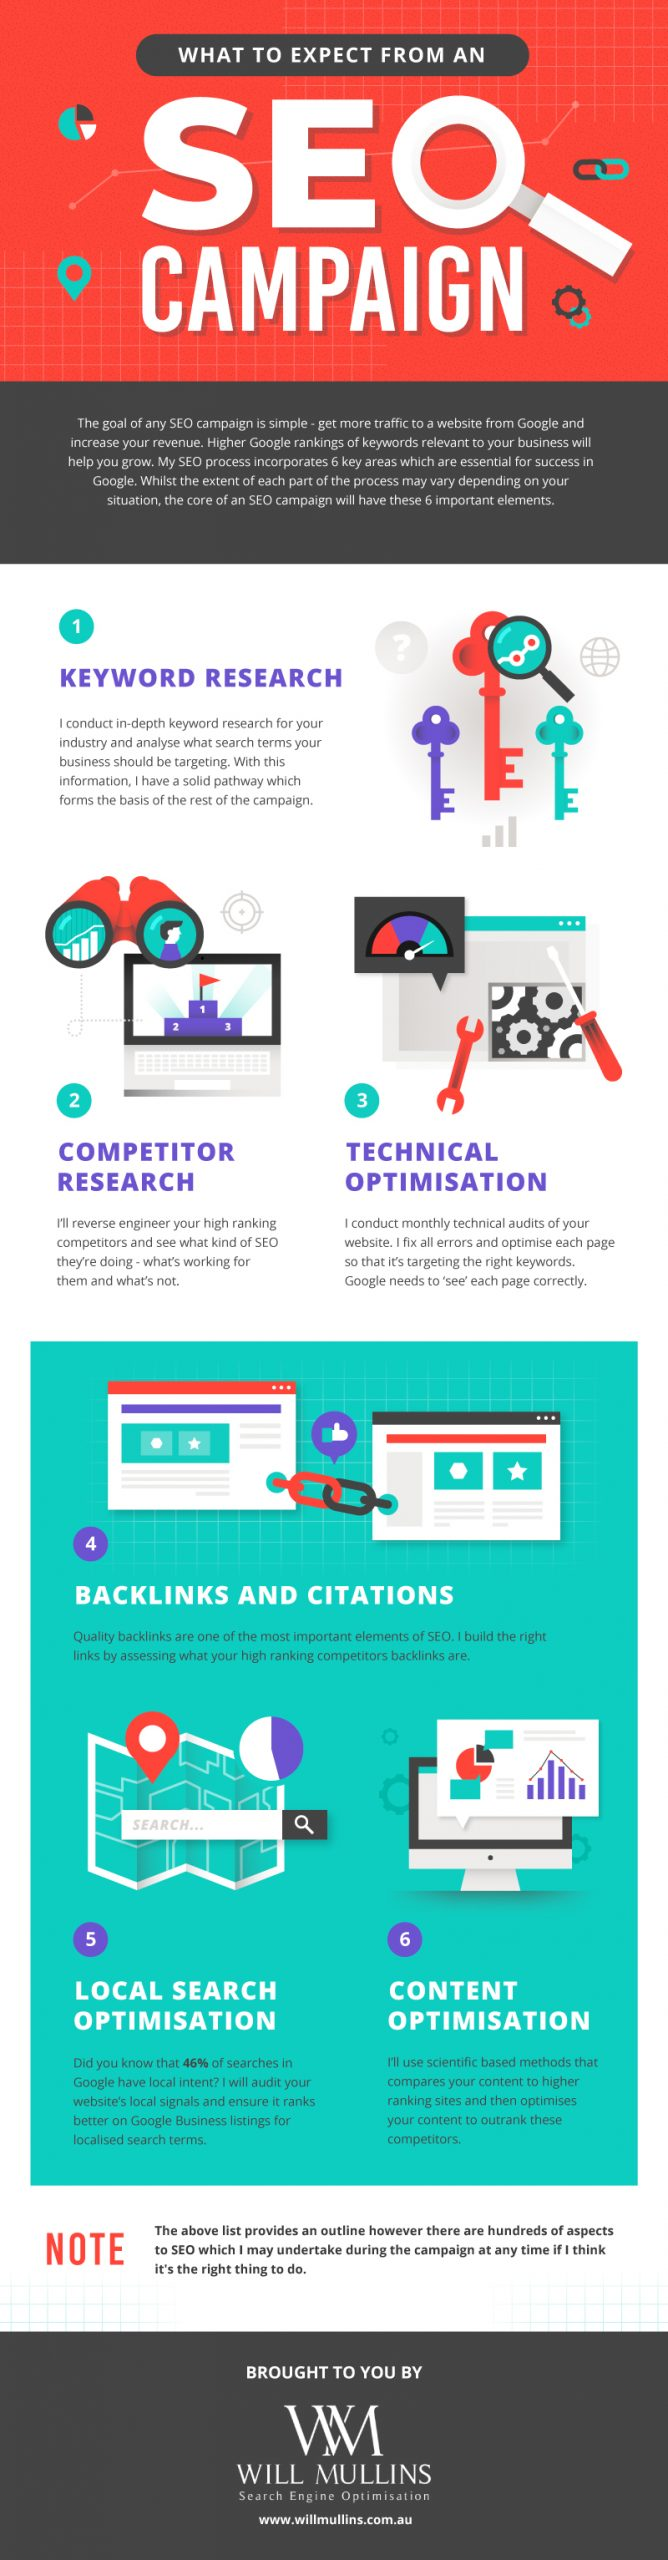 what to expect from an seo campaign